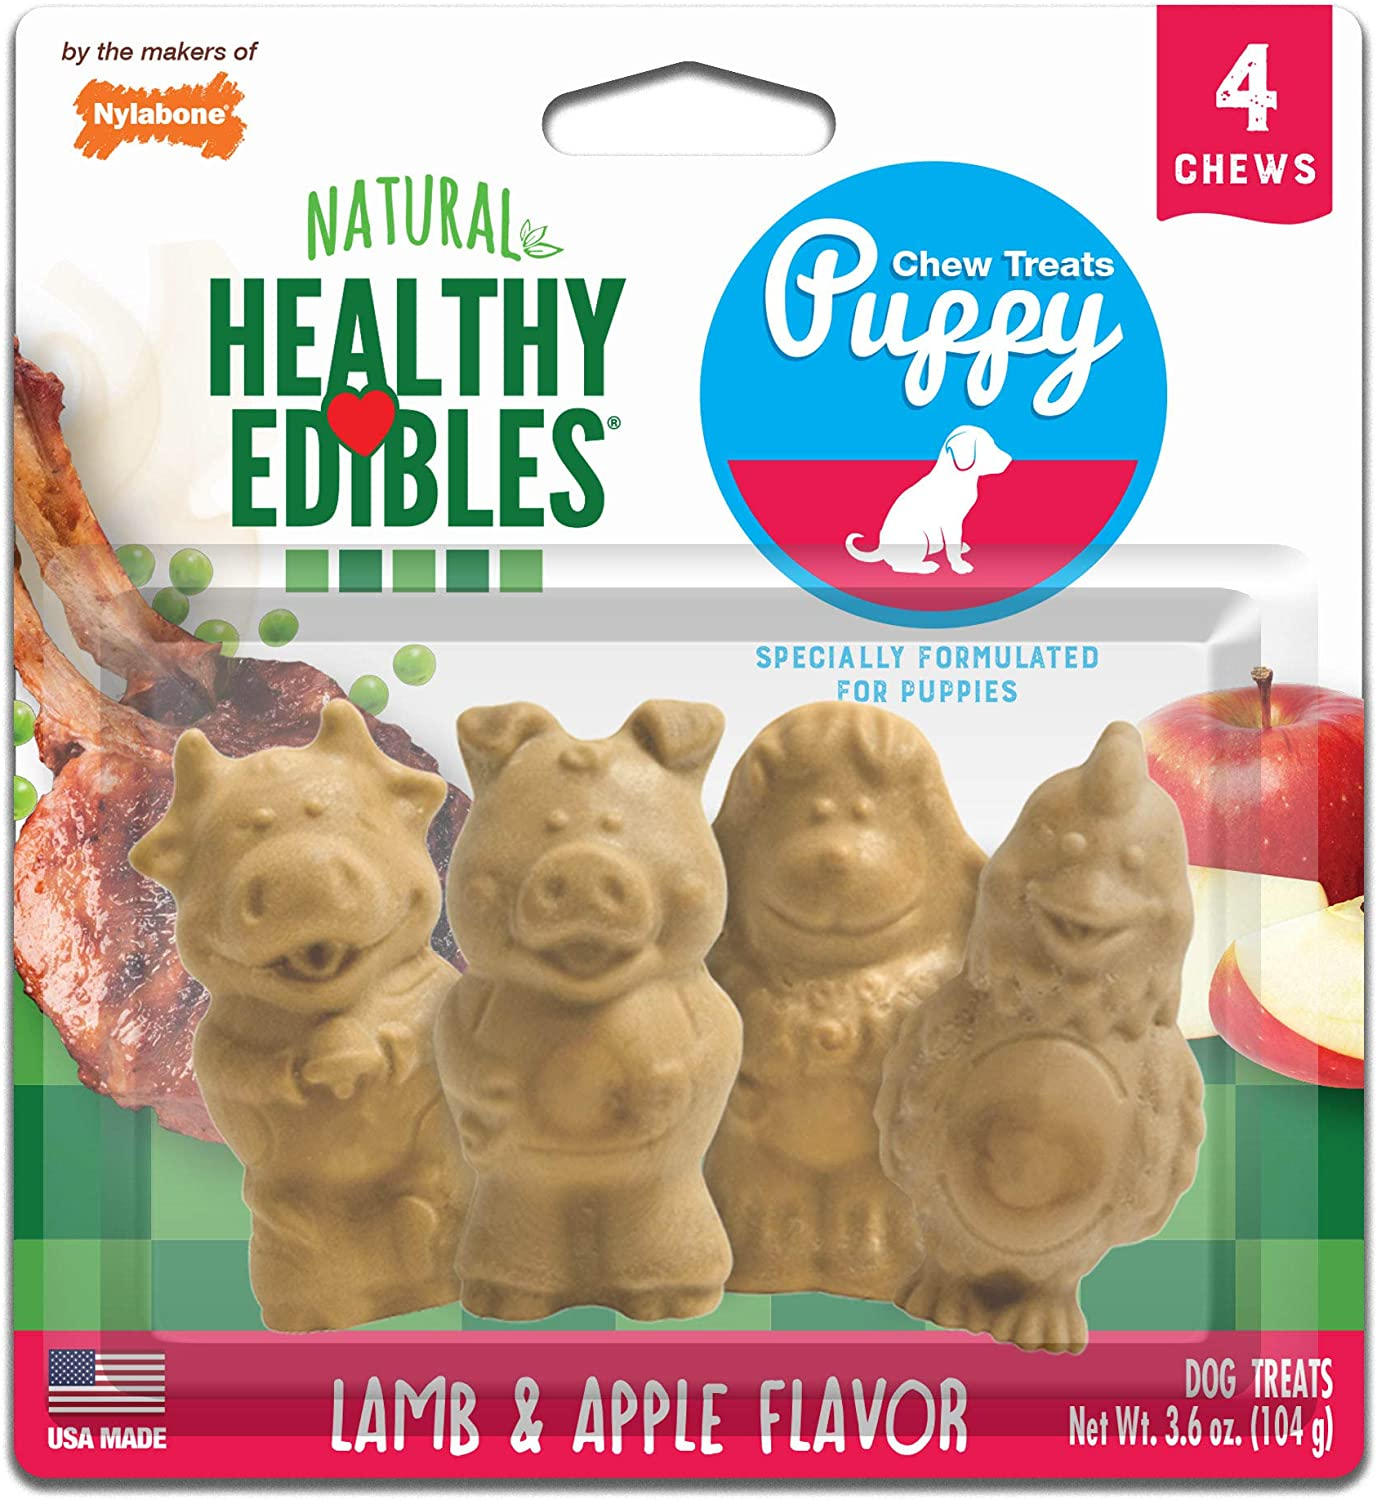 Nylabones Healthy Edibles Lamb and Apple Puppy Pals Chew Treats Variety Pack, 4 Chews Per Pack